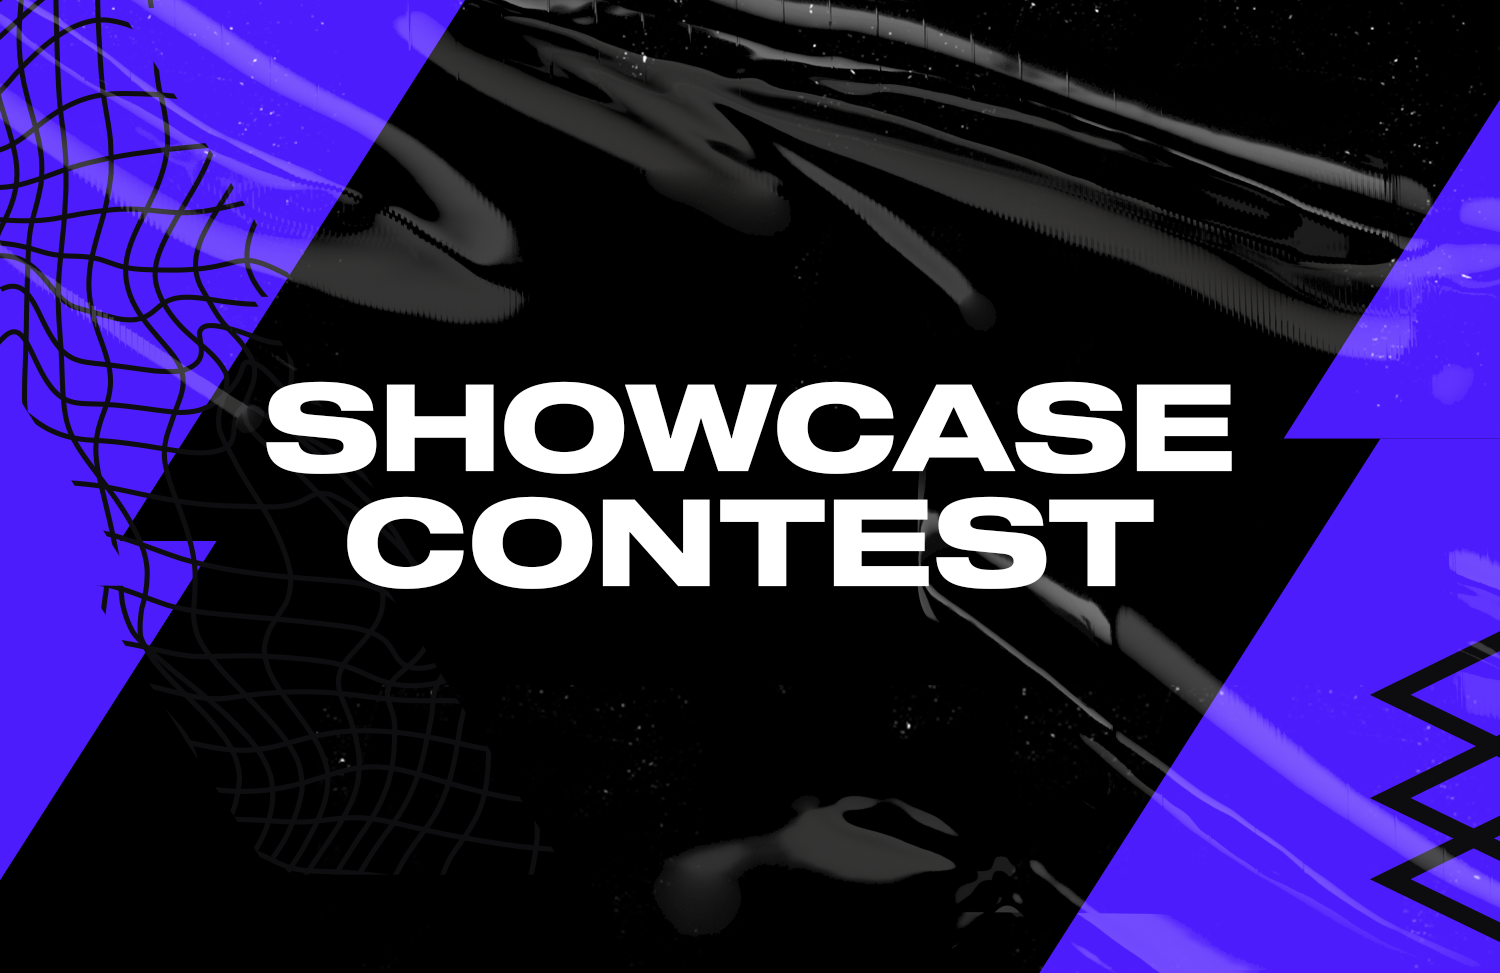 Now that you can like Showcases on NBA Top Shot, we figure it's the perfect time to launch a contest with some seriously awesome rewards.